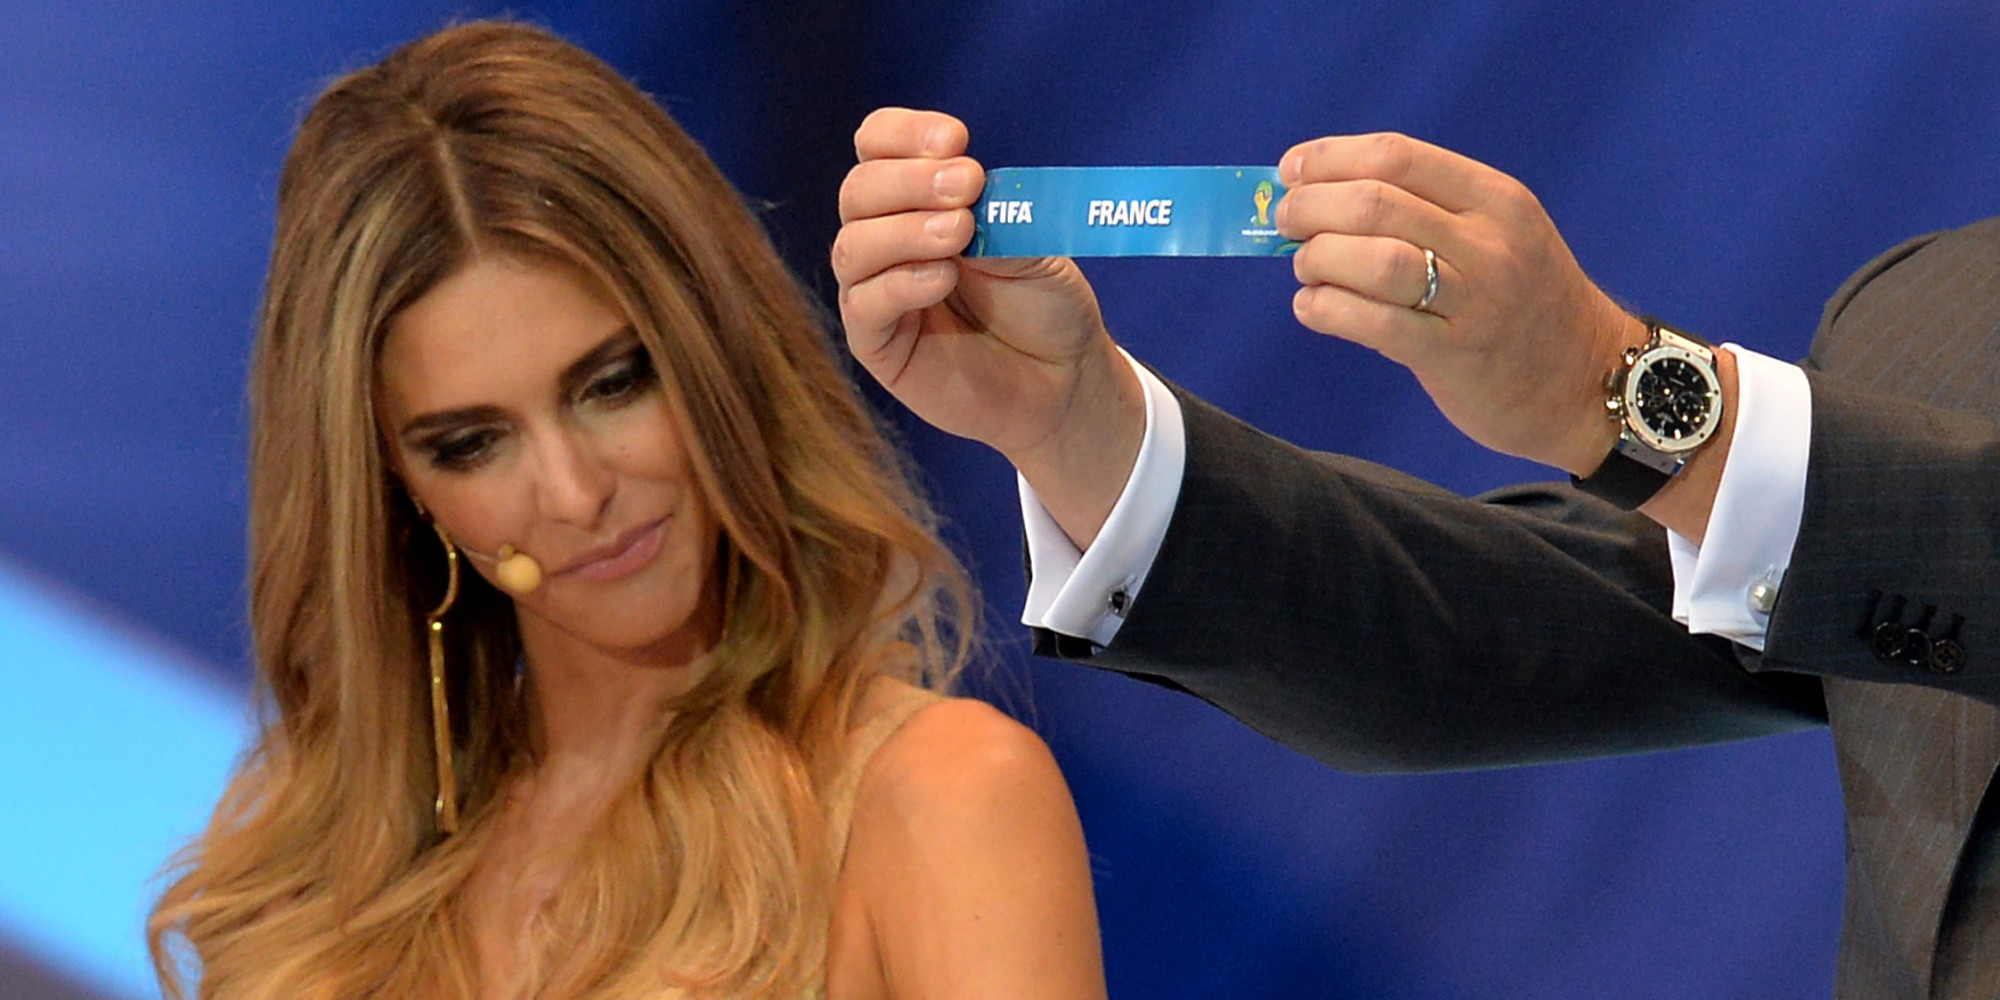 Fernanda Lima Distracts Soccer Fans During World Cup Draw ...